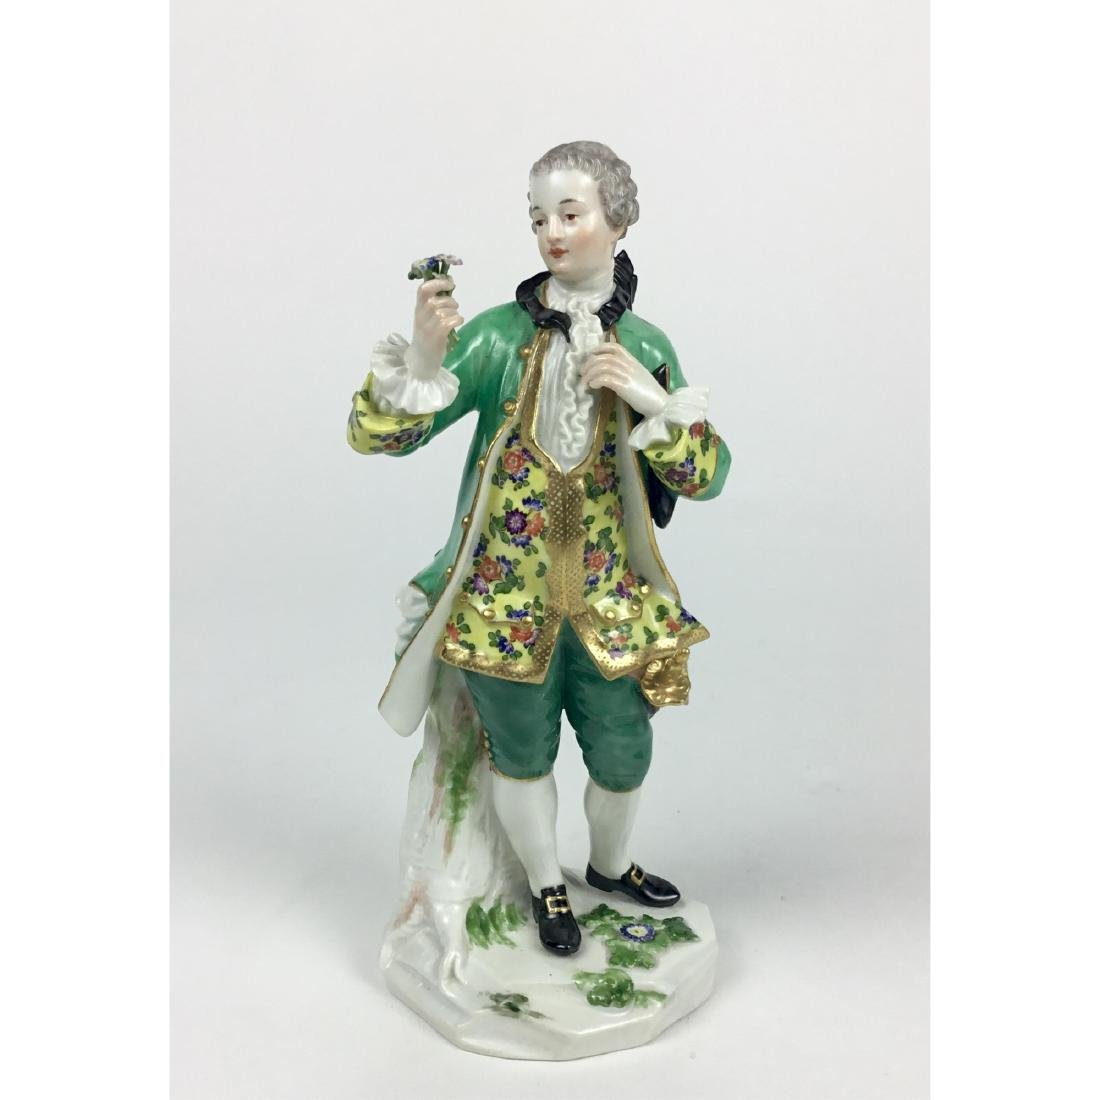 MEISSEN YOUNG MAN WITH FLOWERS FIGURINE